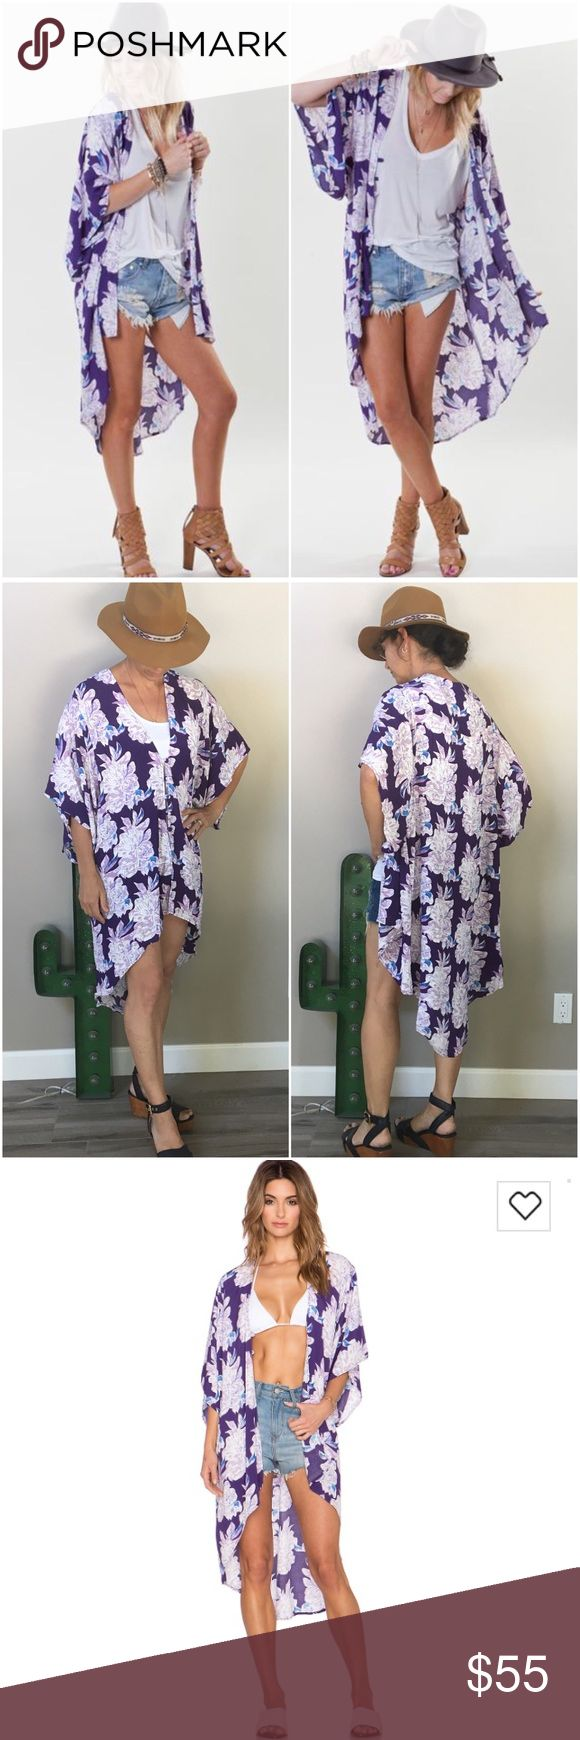 """Flynn Skye Stevie Kimono Purple Punch This flowy Flynn Skye kimono is anything but ordinary. You can throw it over anything to create the perfect Boho look -- swimsuit, cut offs, jeans. It works amazingly w/your favorite booties, summer sandals or wedges! One size fits all & that is so true! Will look awesome on Size 0 or plus-size. Can be worn open or buttoned up. 100% rayon. Asymmetrical hem. I am 5'5"""" and 125 lbs & am wearing it in 2nd photo. Worn twice for photos & in perfect condition…"""